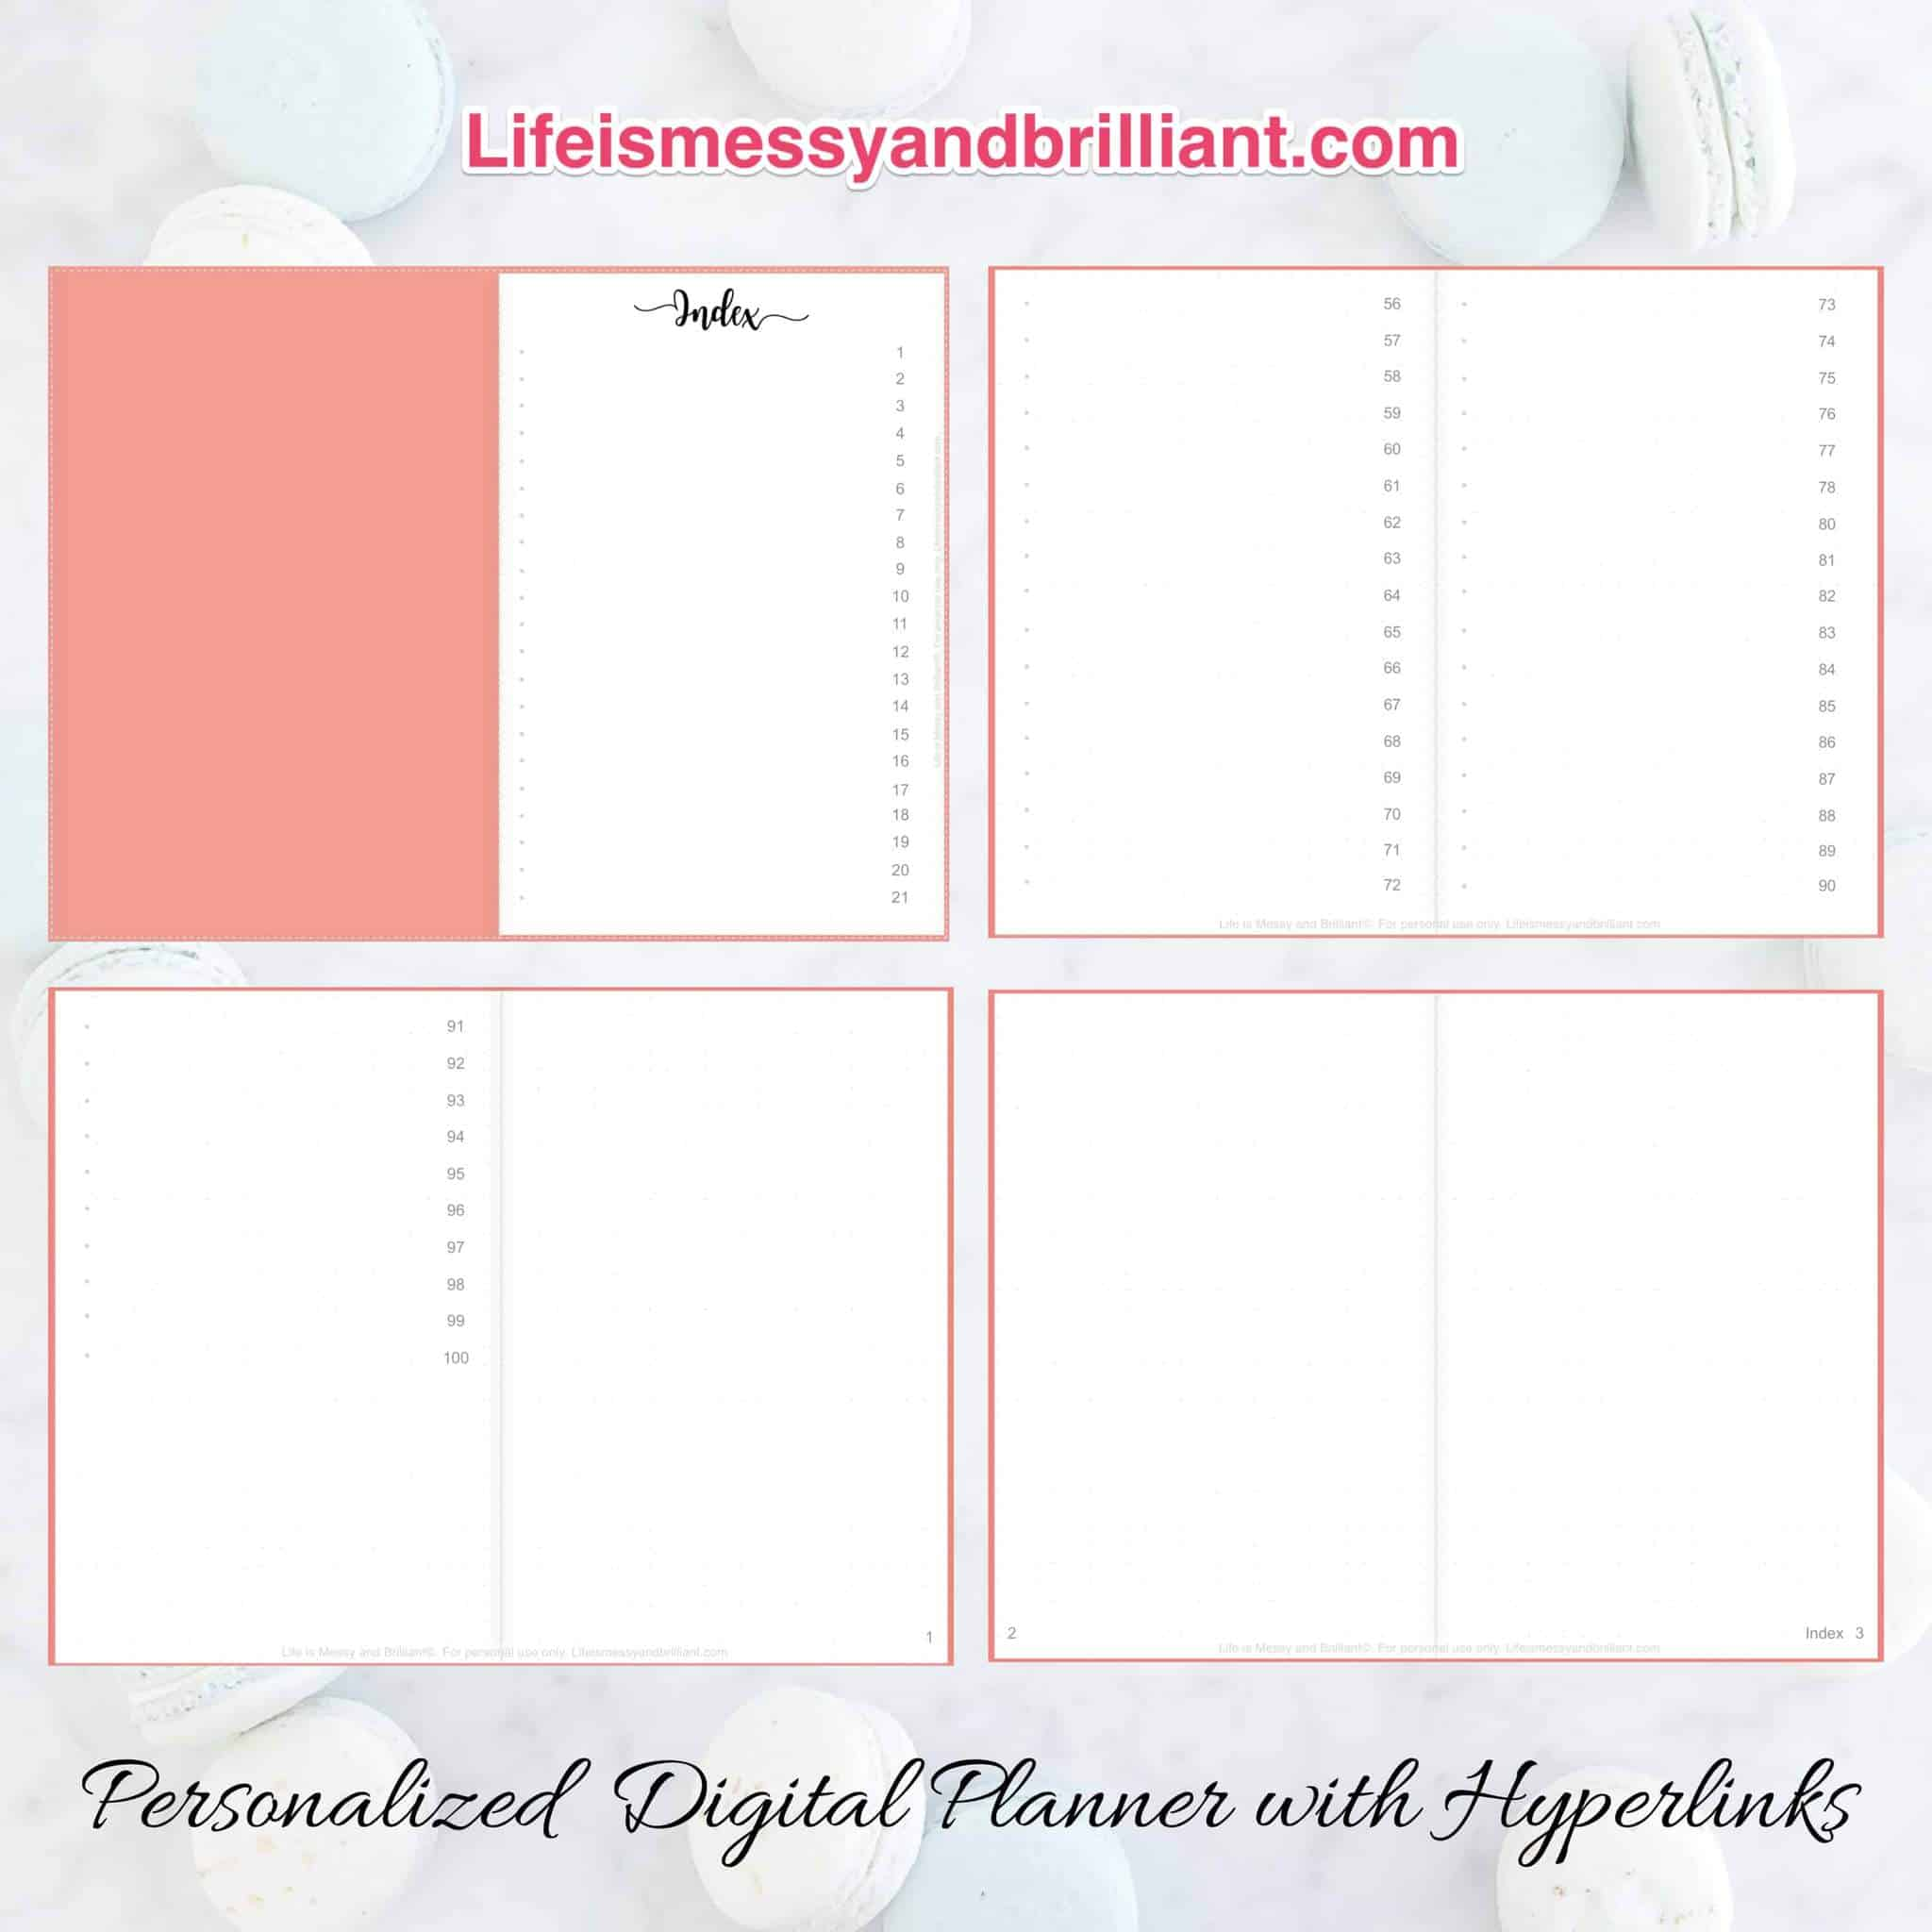 How to Make a Digital Planner with Hyperlinks